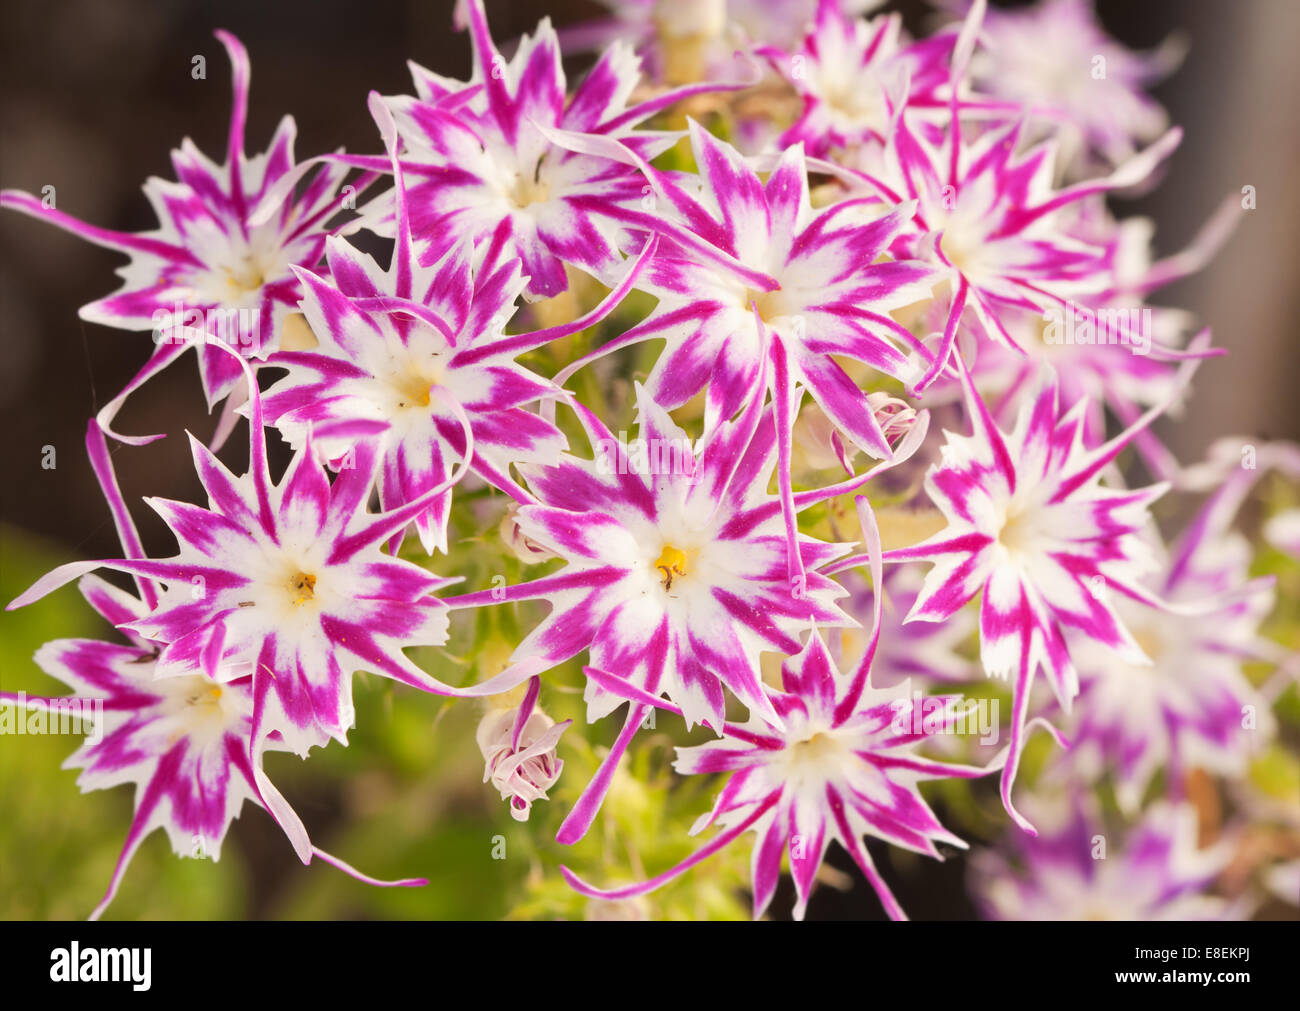 Star Shaped Flowers Stock Photos Star Shaped Flowers Stock Images